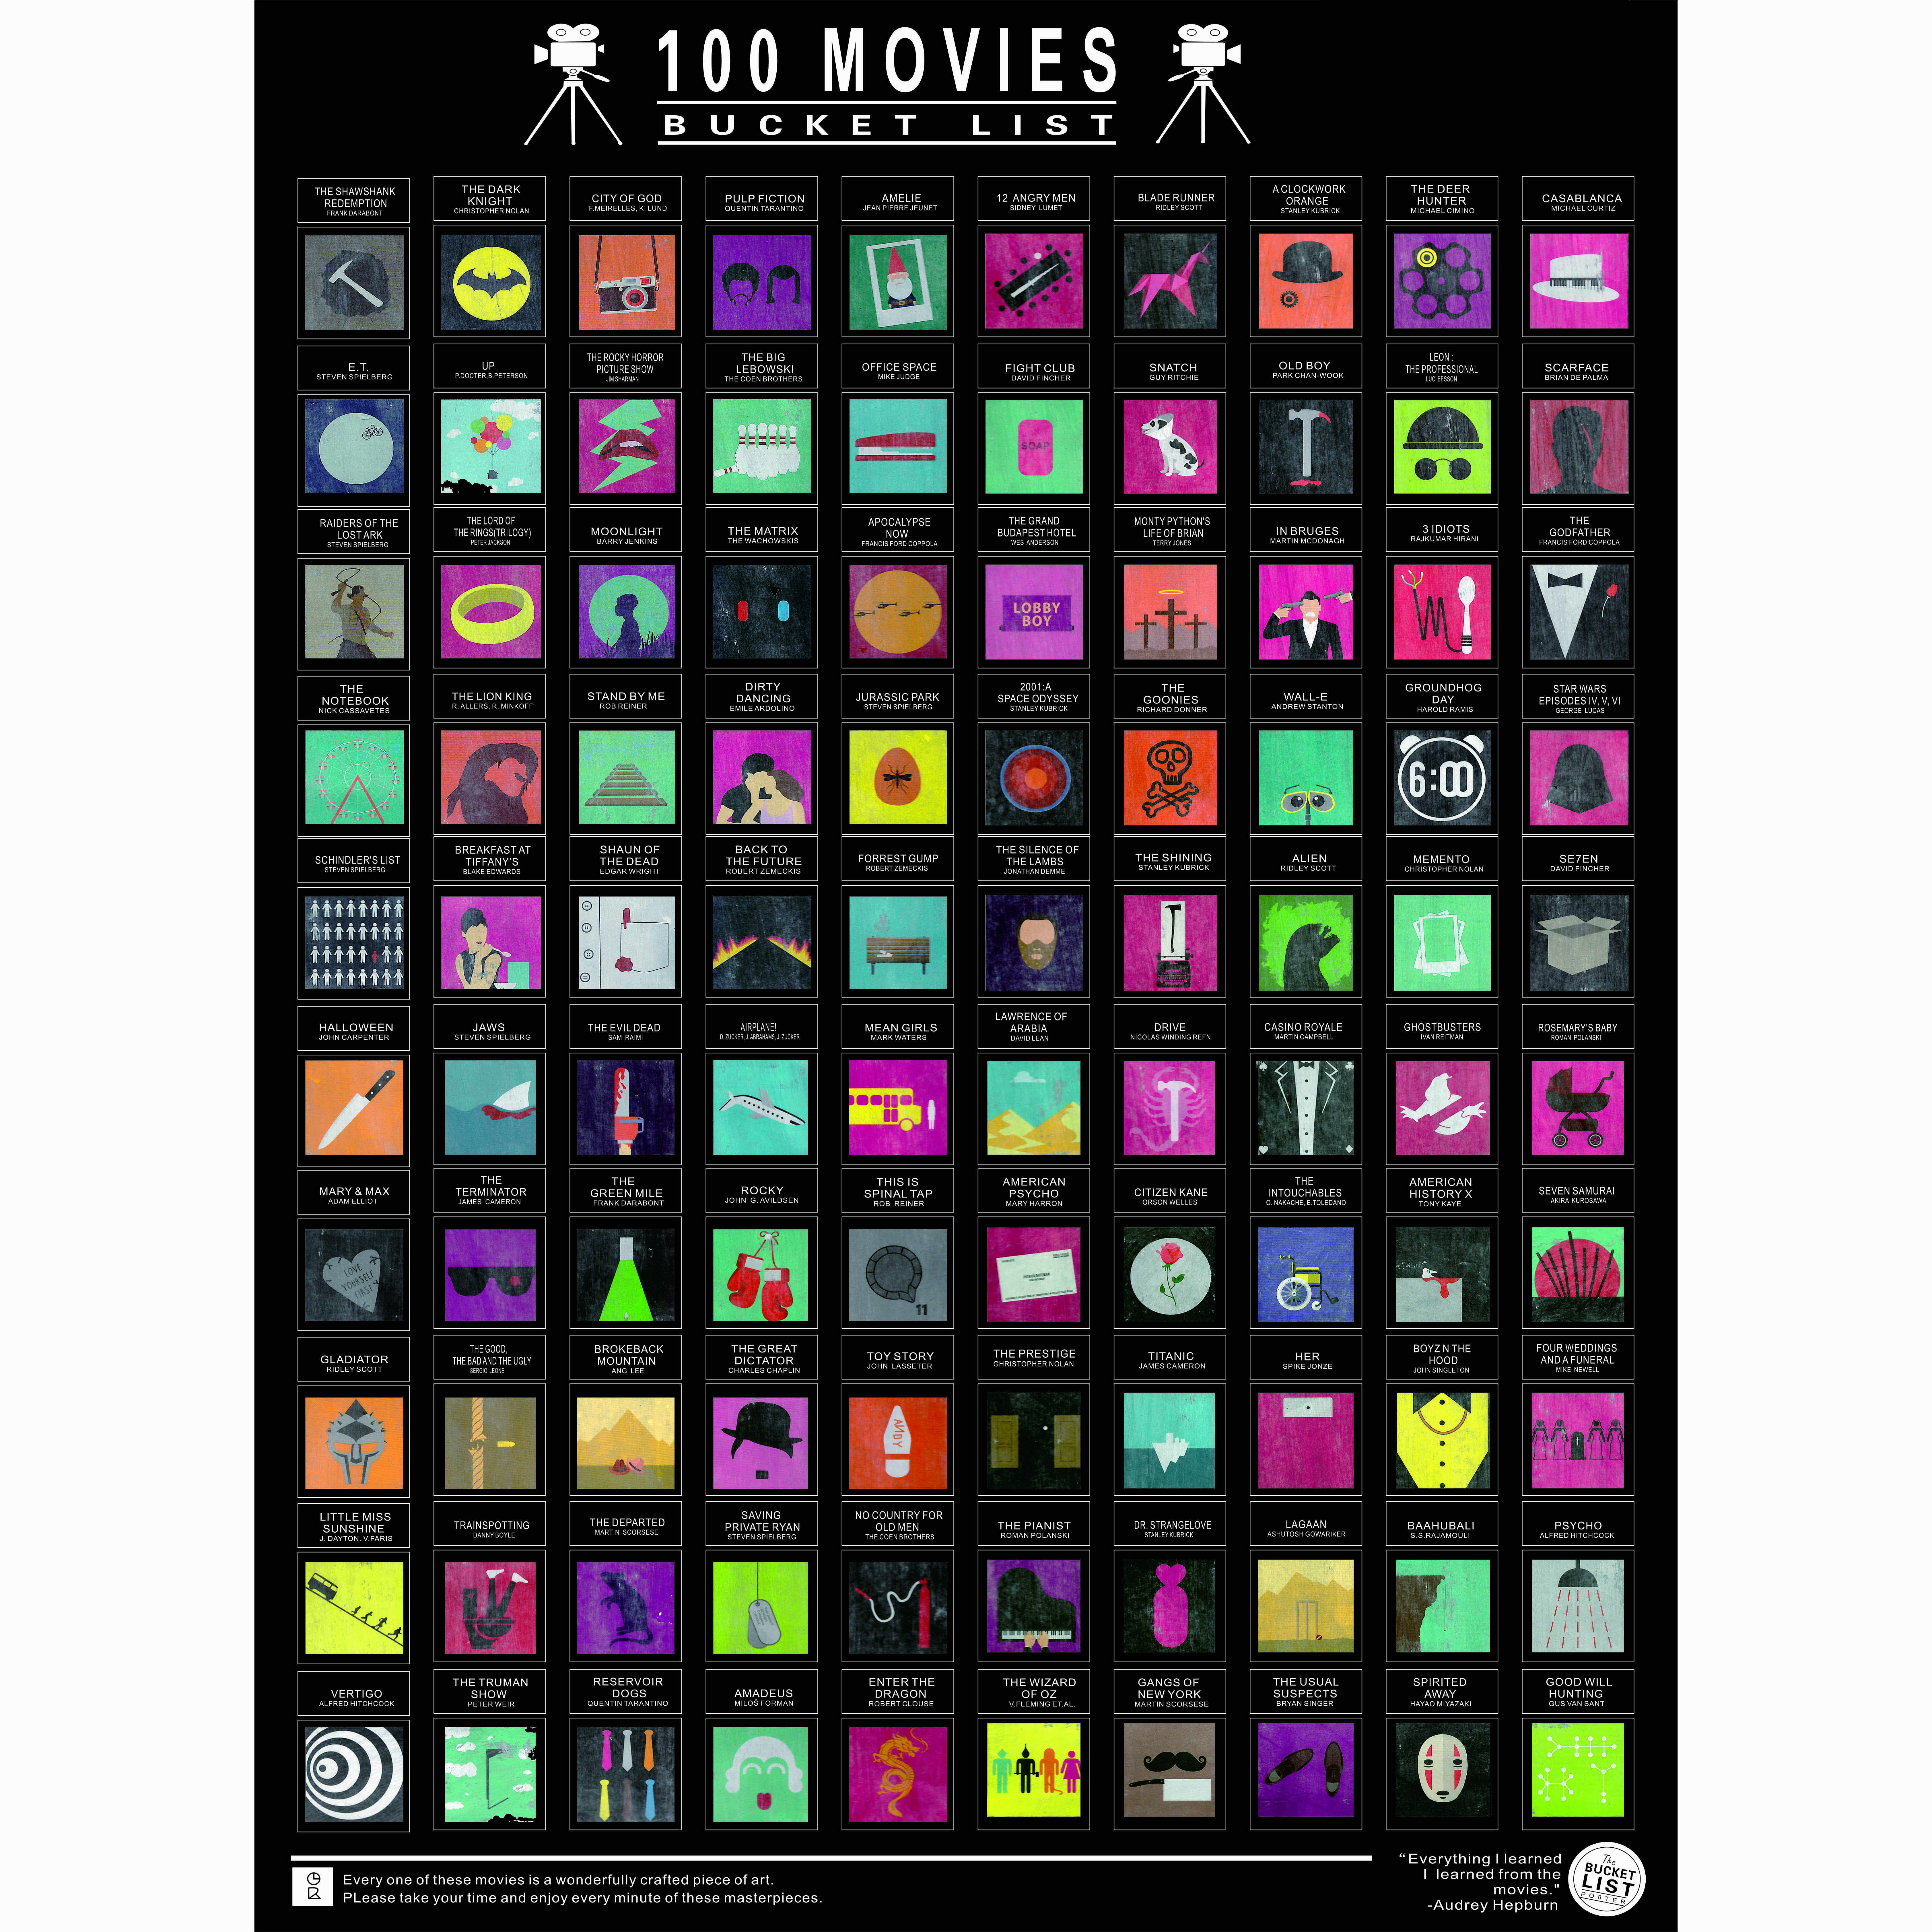 100 movies scratch off bucket list poster scratch last wish poster gold silver stationery set aliexpress